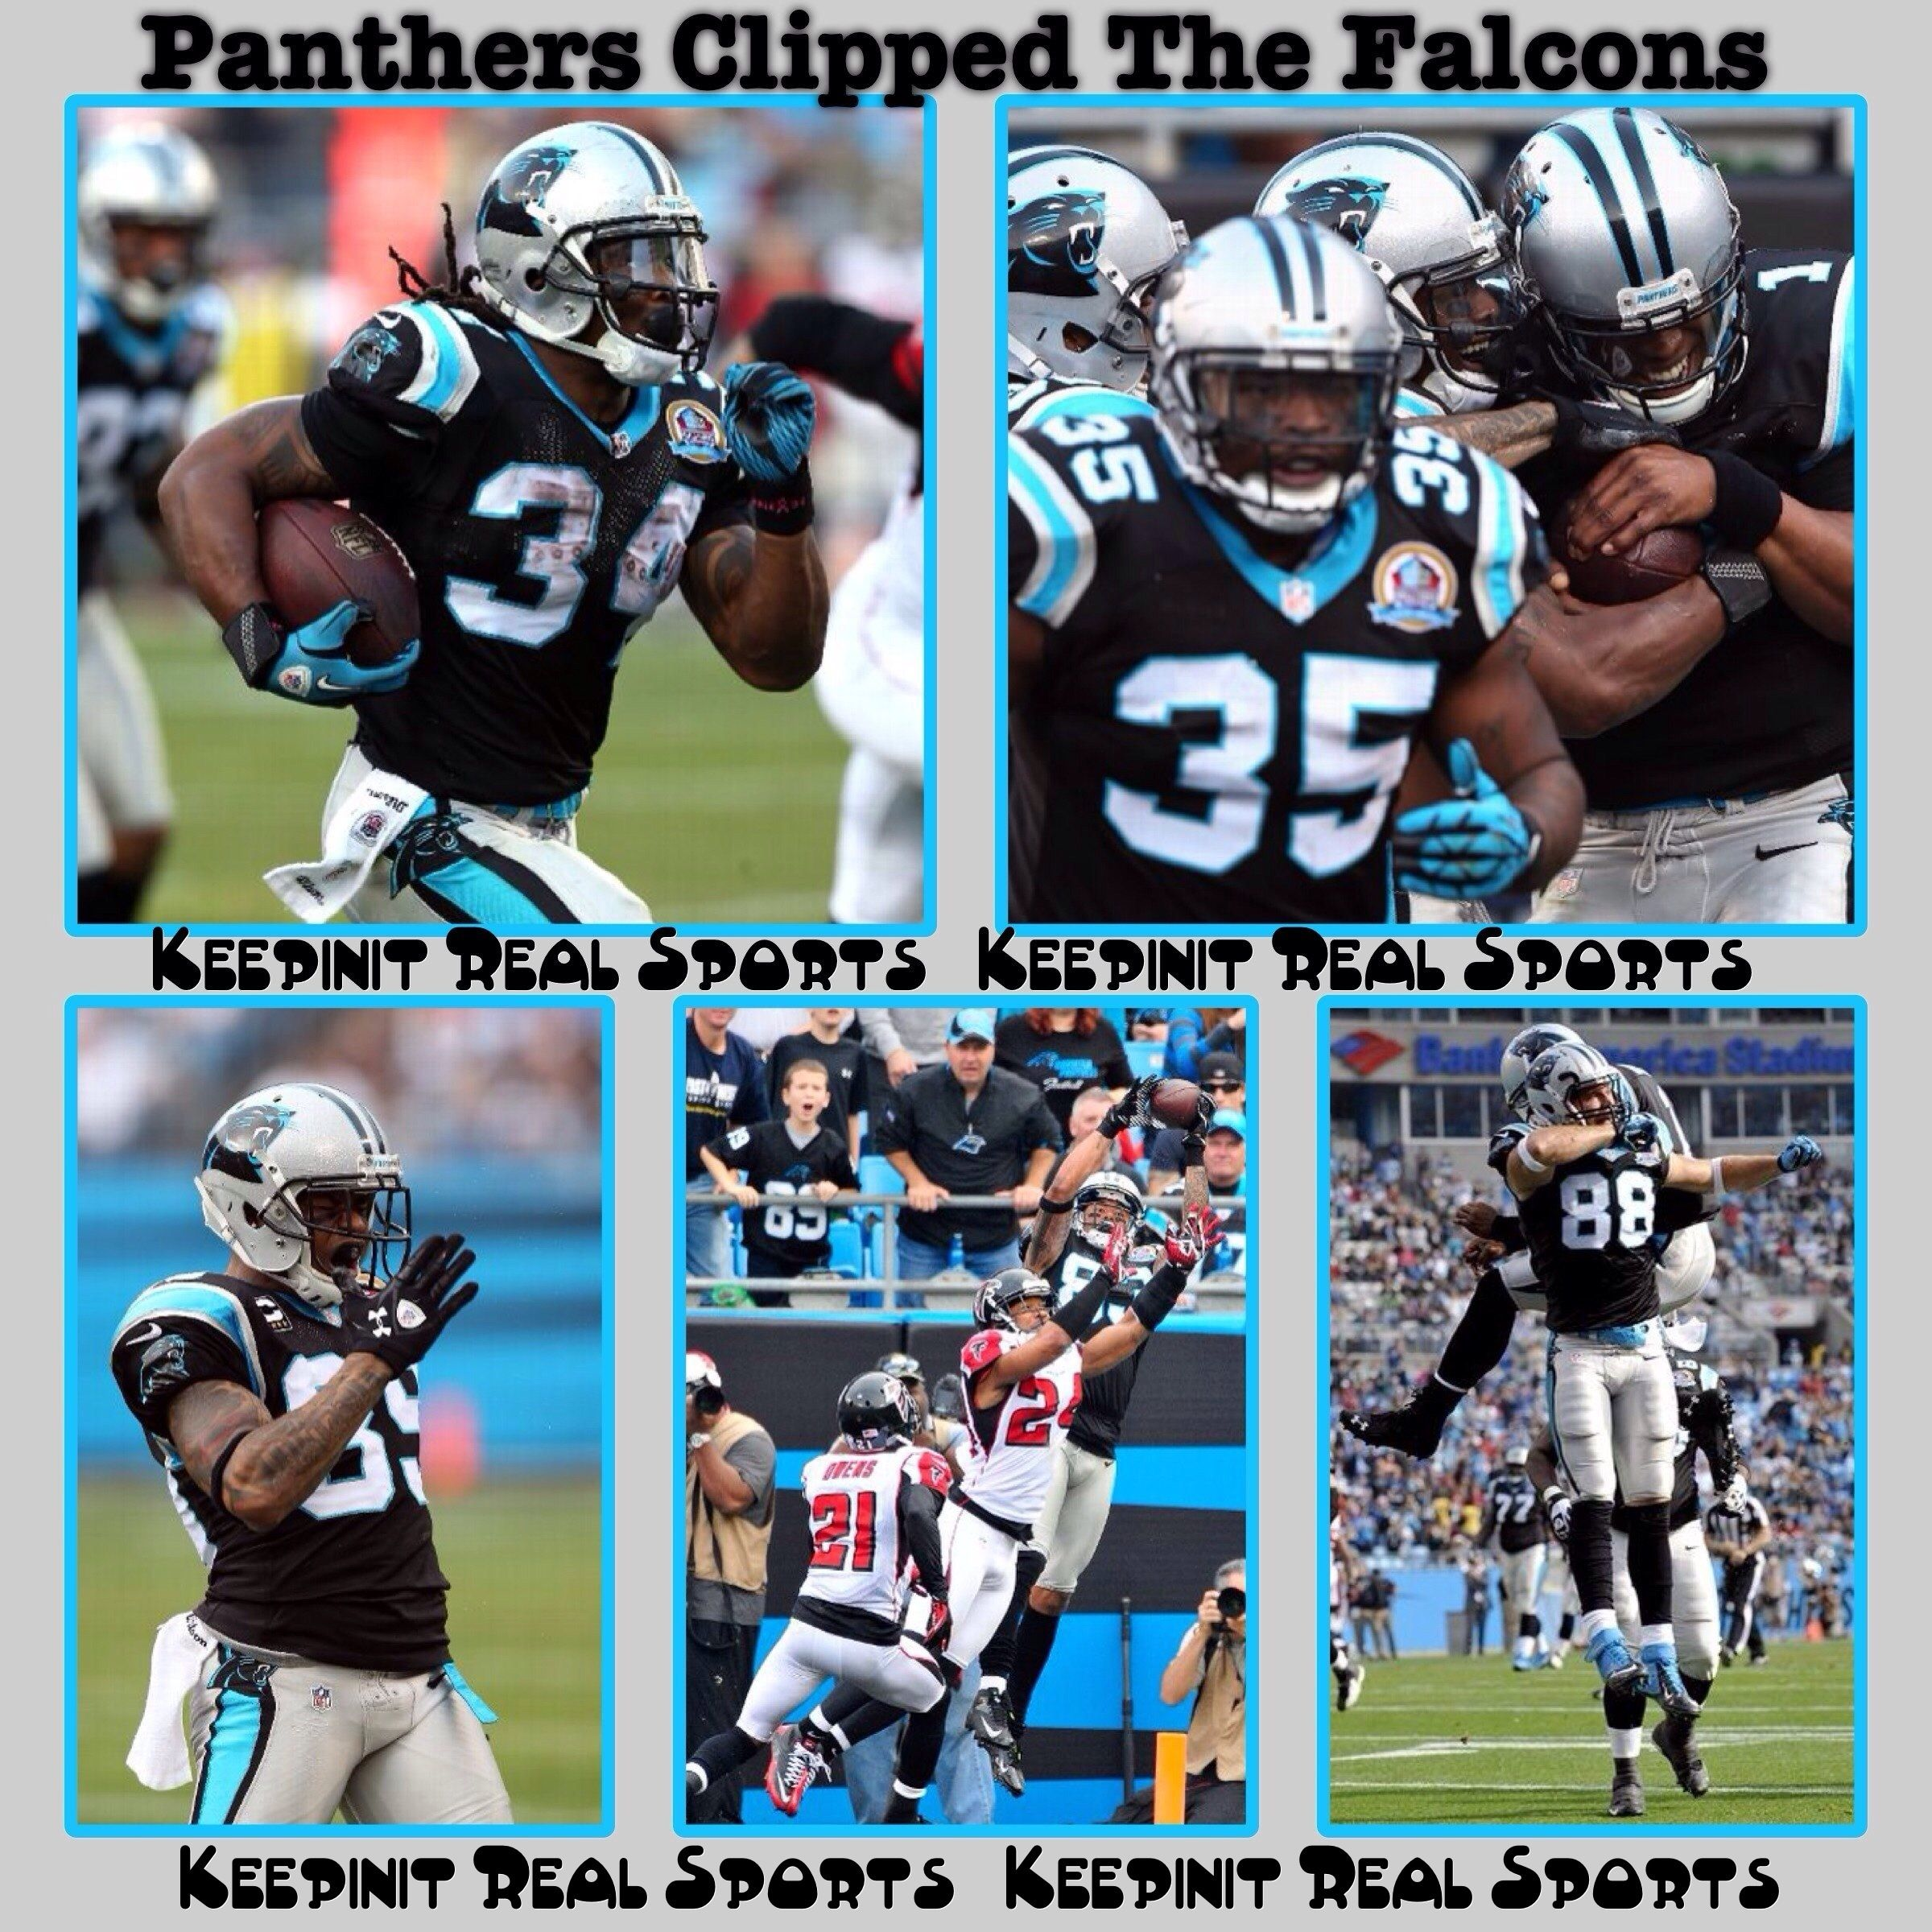 Keepinit Real Nfl Stats Falcons Vs Panthers Falcons 20 11 2 5 2 Away Panthers 30 4 9 2 5 Home Final Top Perfor Nfl Stats Football Helmets Football